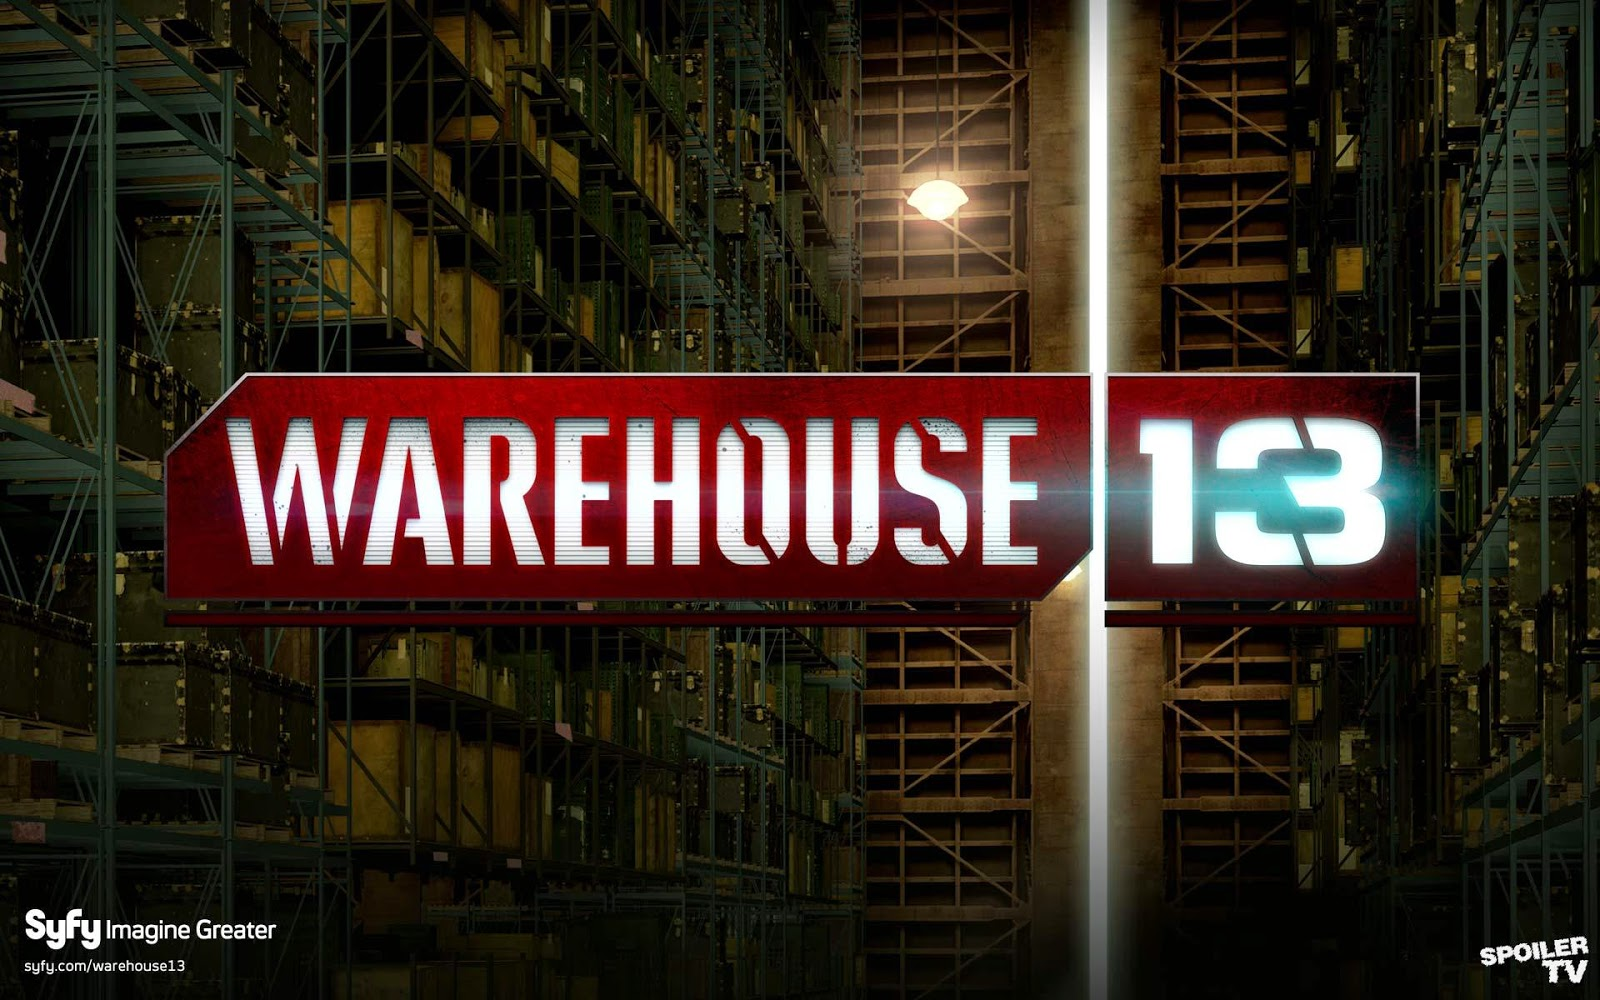 Warehouse 13 - Saying goodbye to a series of endless wonders